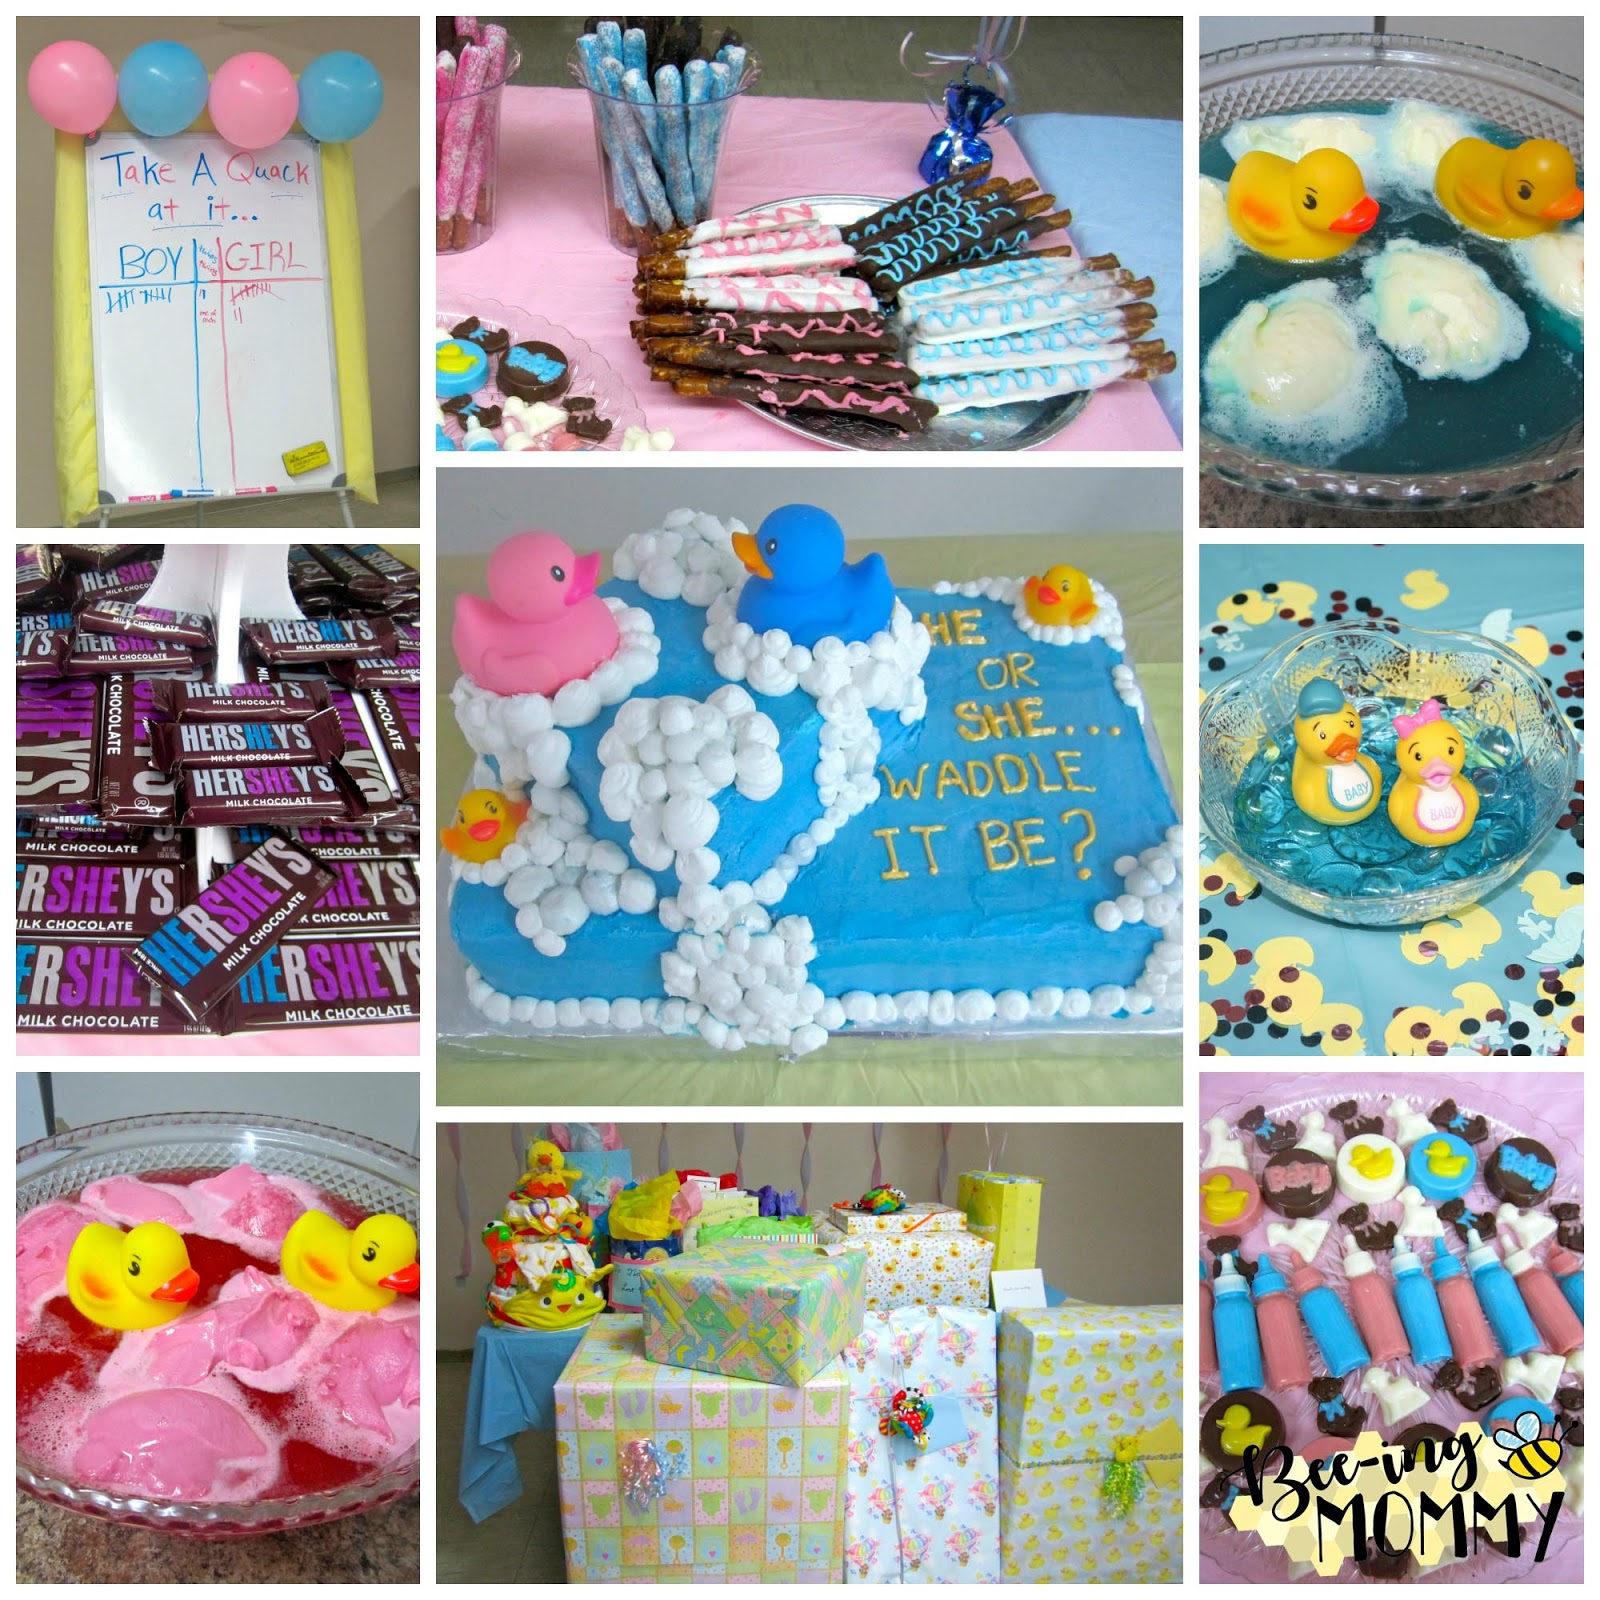 Gender Reveal Baby Shower, Waddle It Be?, Waddle It Be Baby Shower,